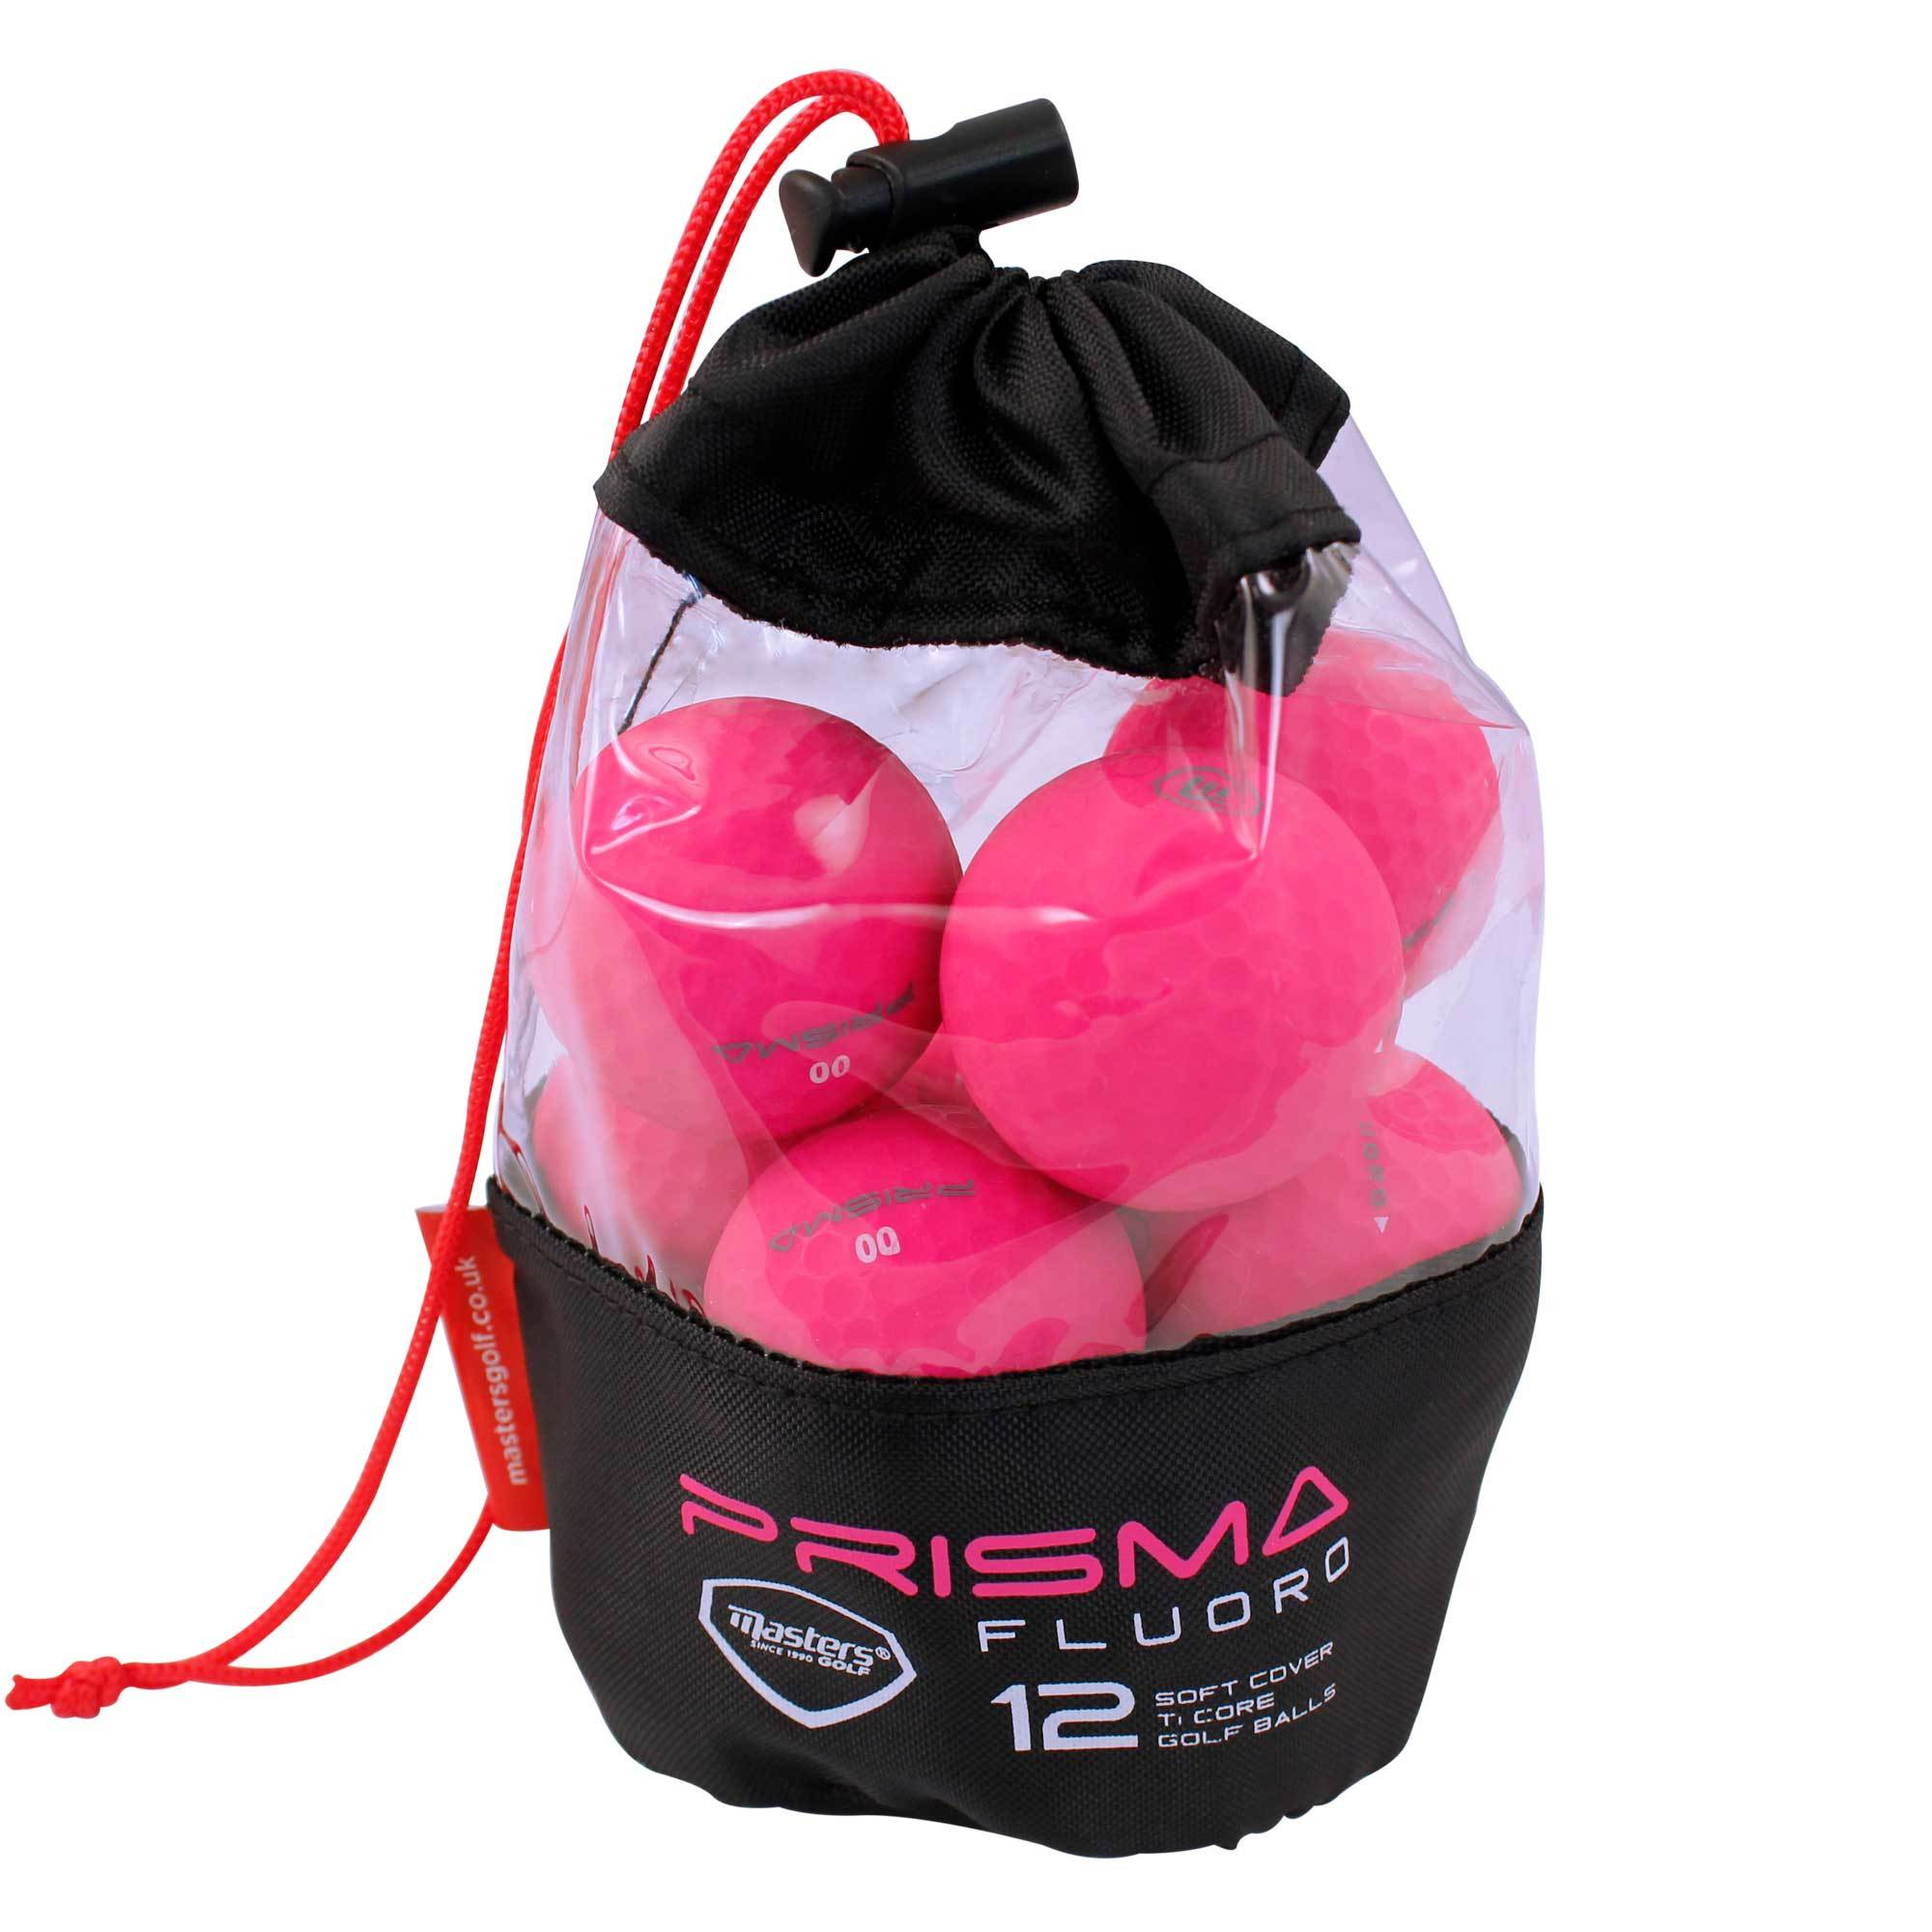 Prisma Fluoro Matt TI Golf Balls Bag 12 - Event Stuff Ltd Owns Putterfingers.com!